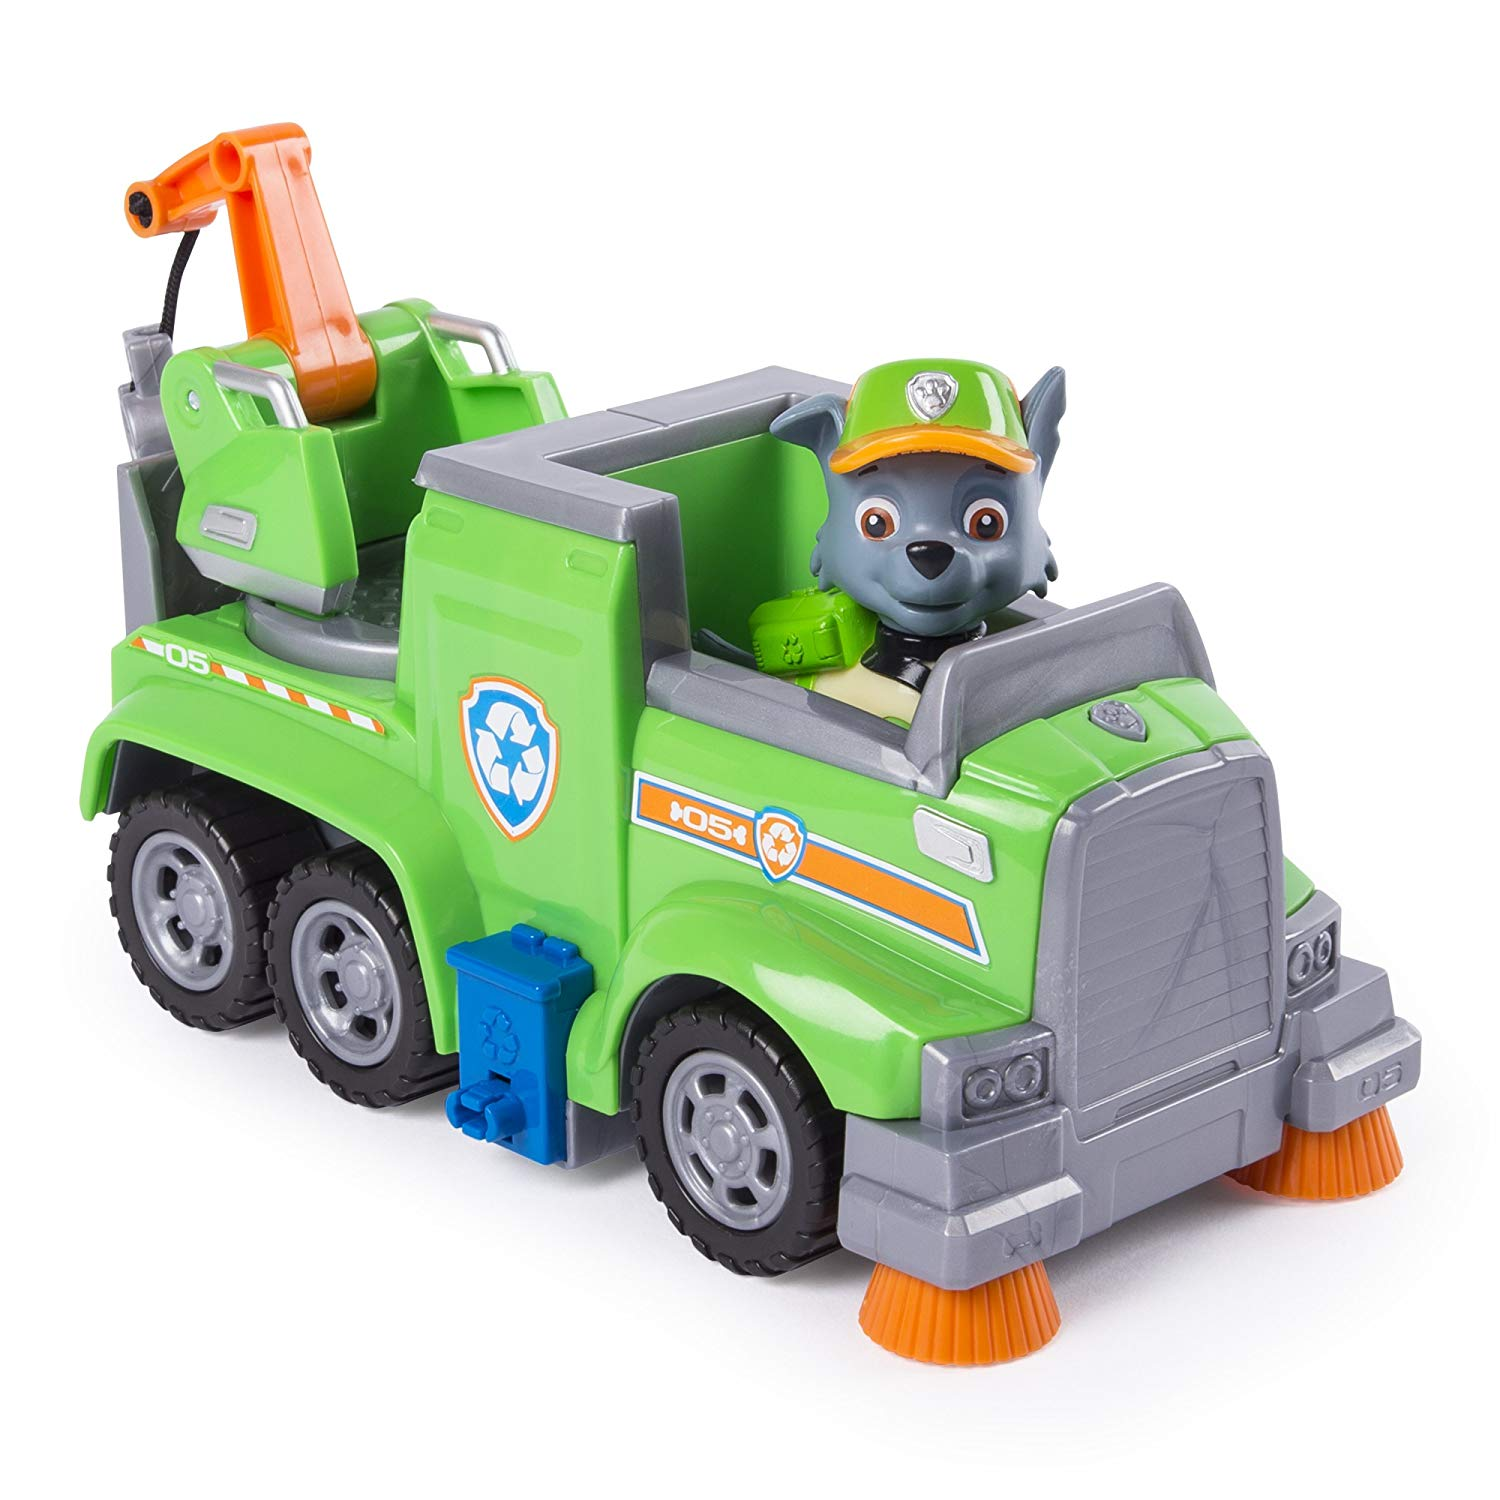 Patrulha Canina Ultimate Rescue Rocky Recycle Truck - Sunny -1391